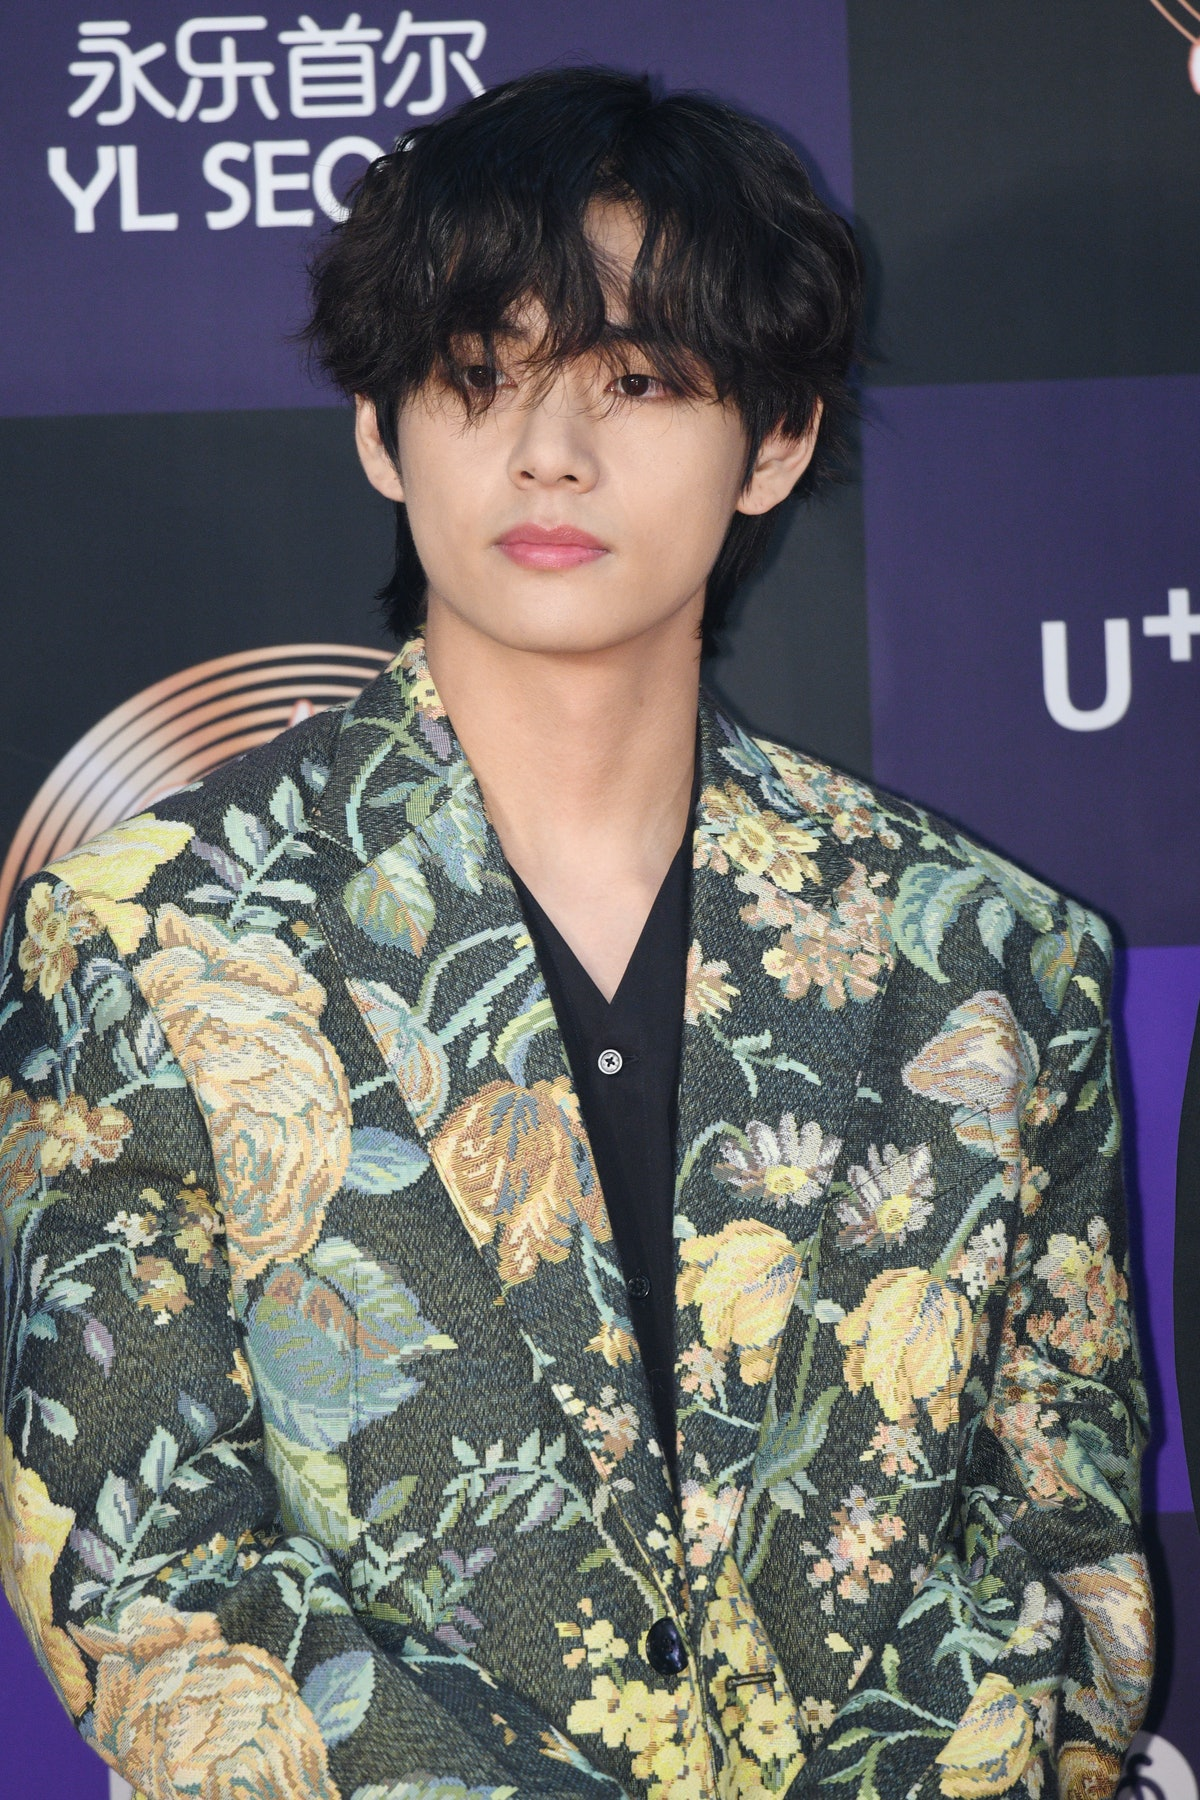 V from BTS hits the red carpet in a floral blazer.